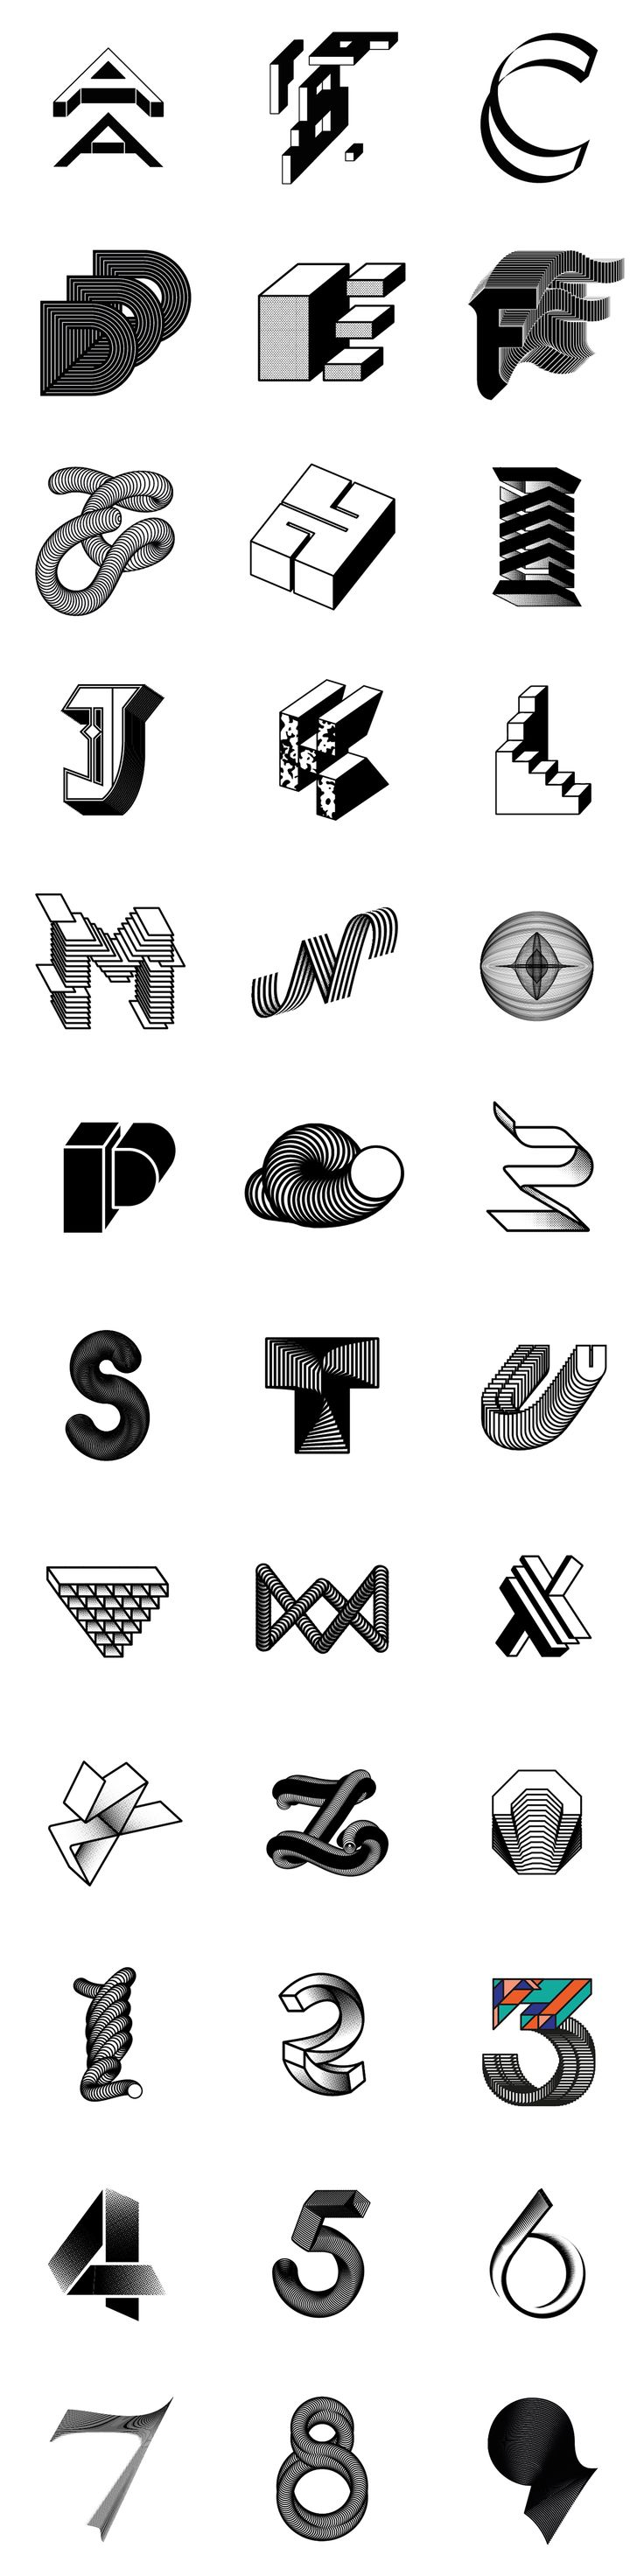 36 Days of Type #02 / Experiments on Behance